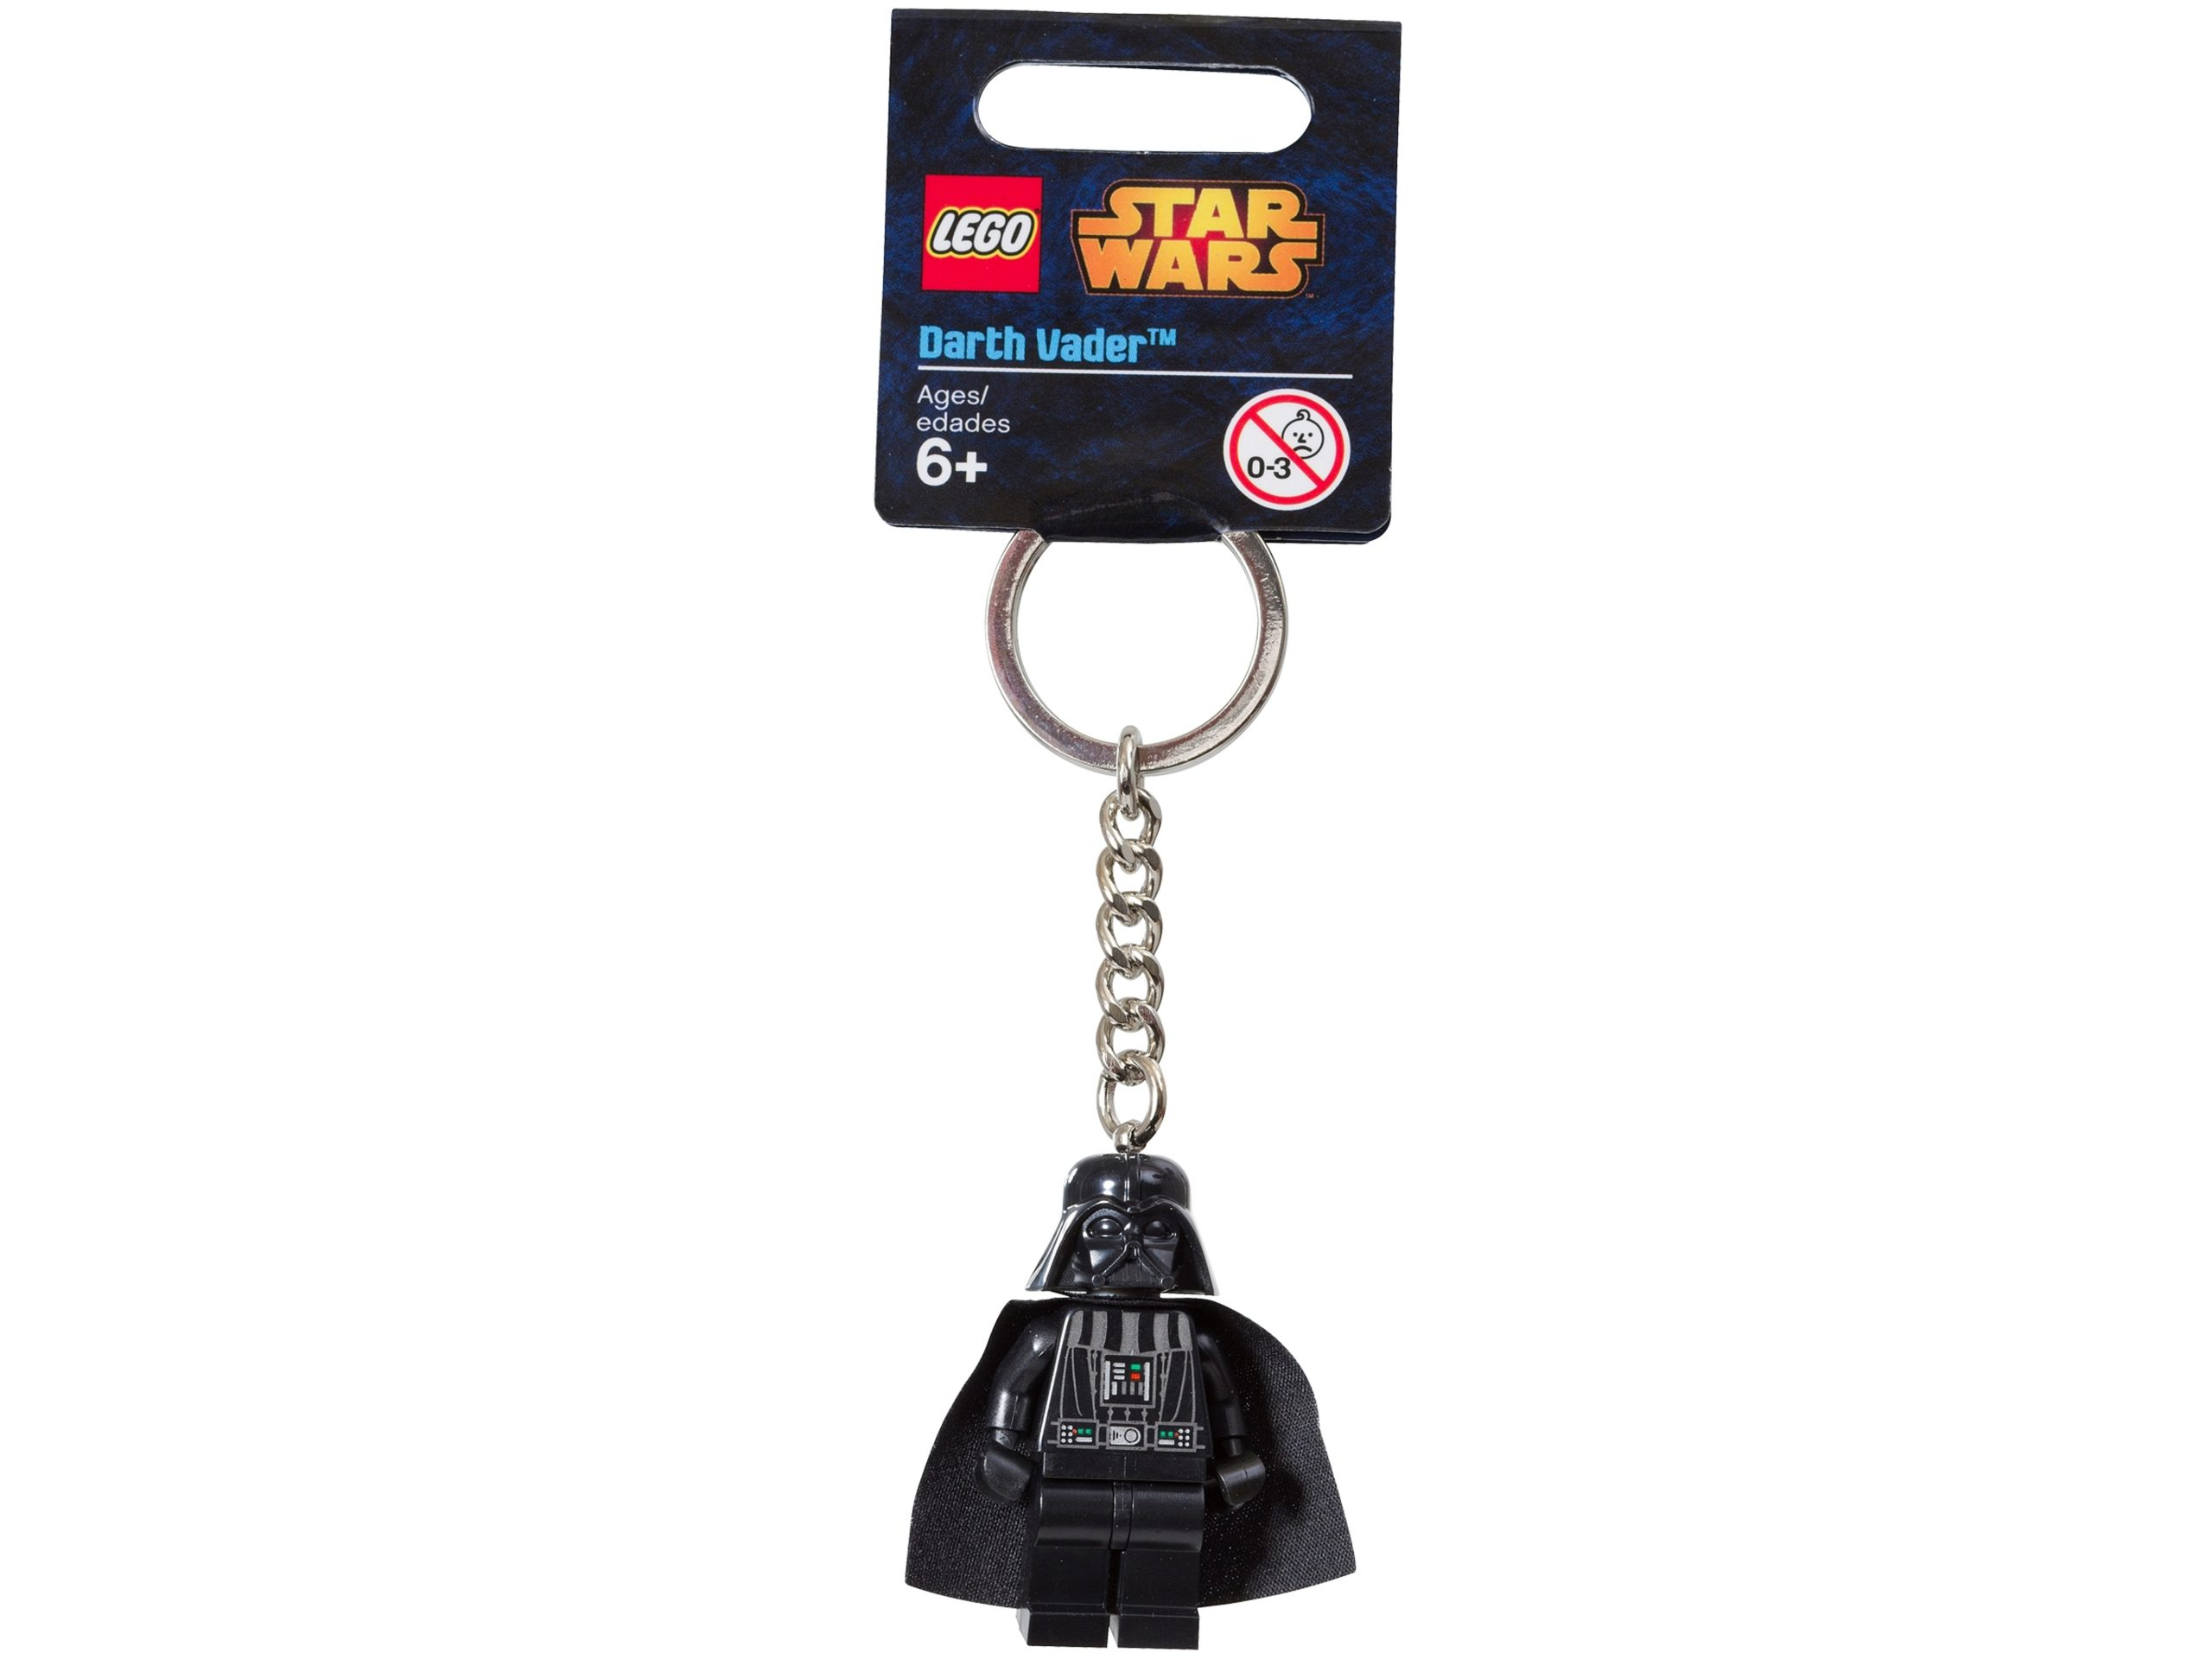 lego 850996 star wars darth vader key chain scaled